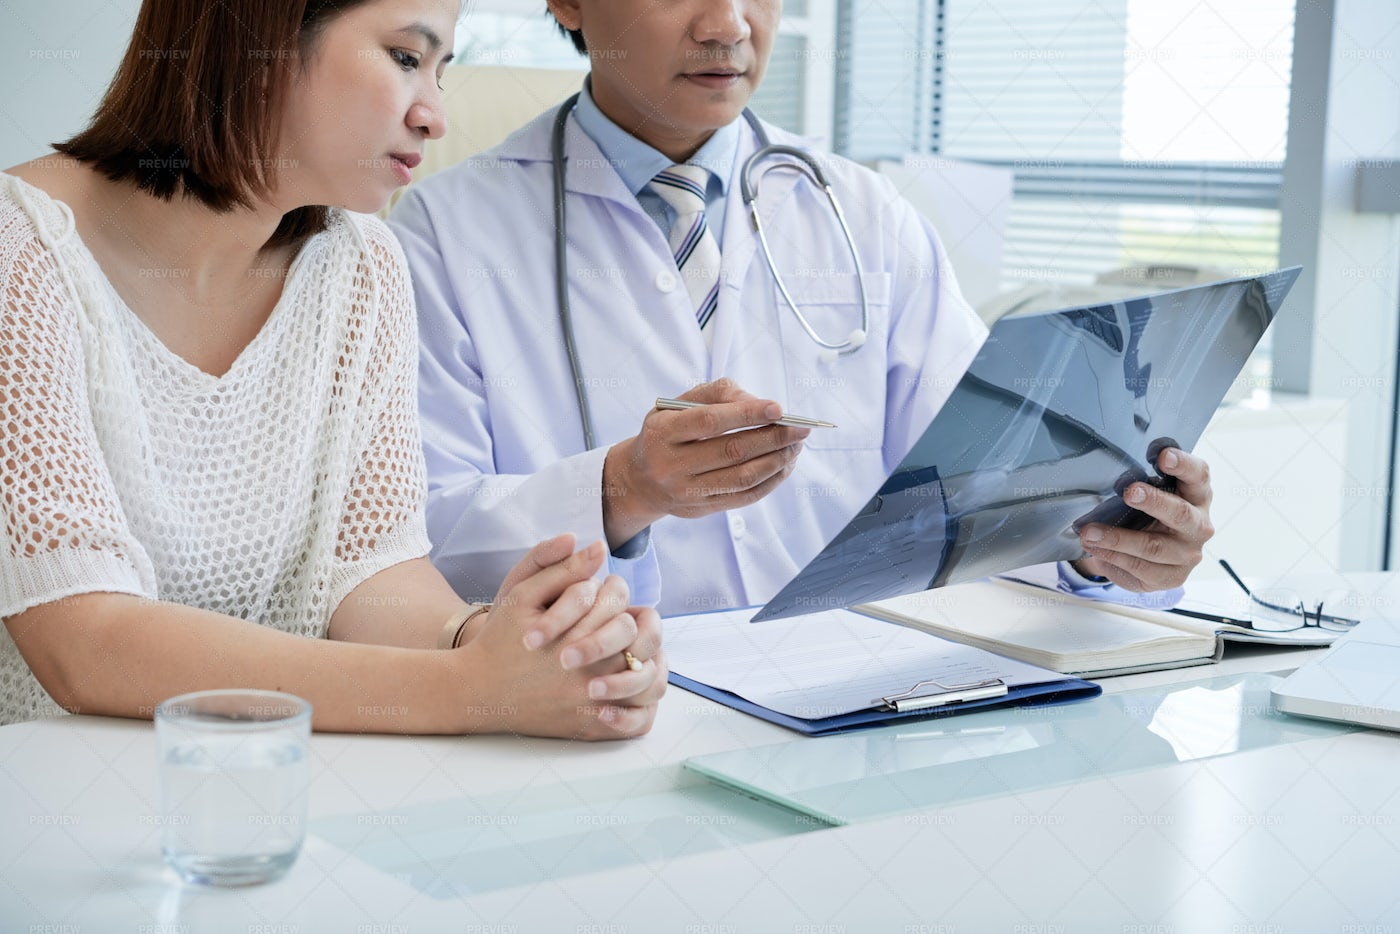 Doctor And Patient Discussing...: Stock Photos